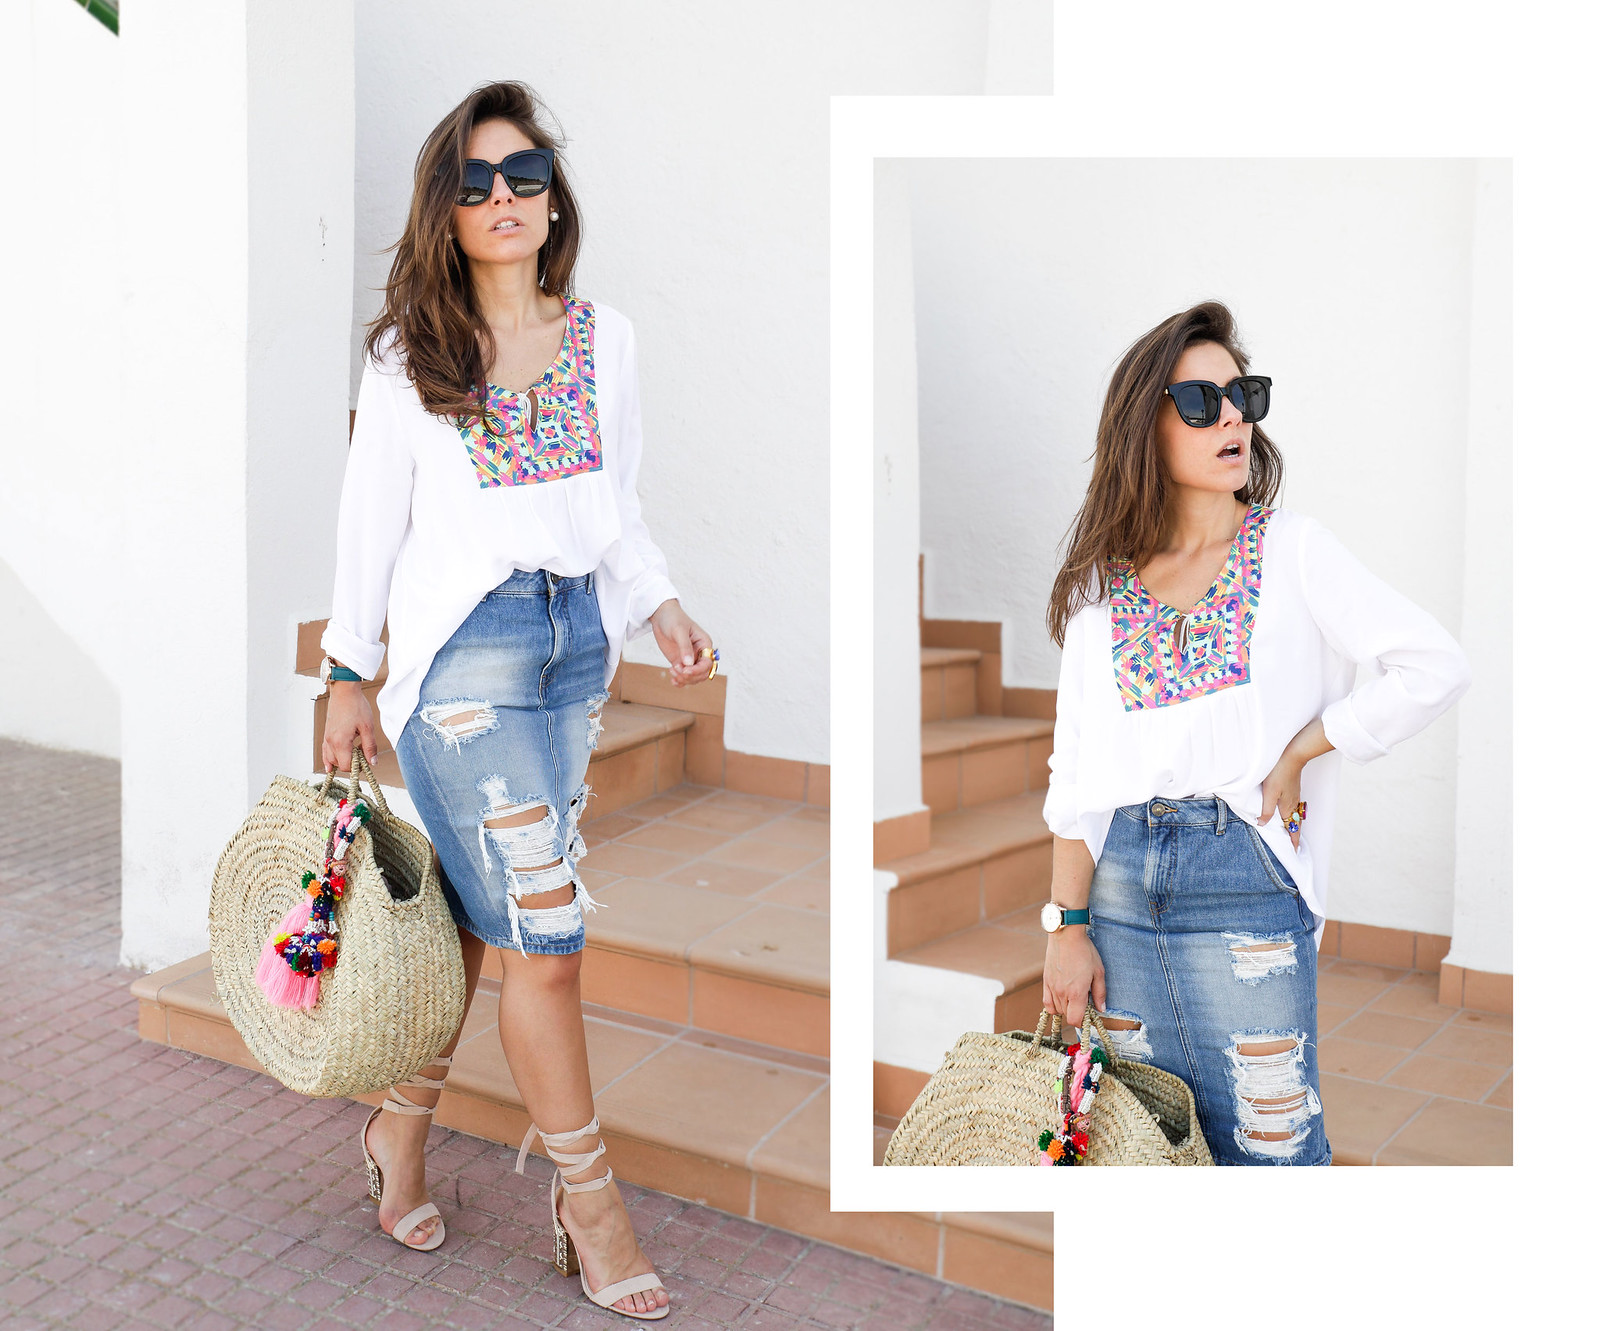 010_ripped_denim_skirt_white_shirt_ruga_style_theguestgirl_barcelona